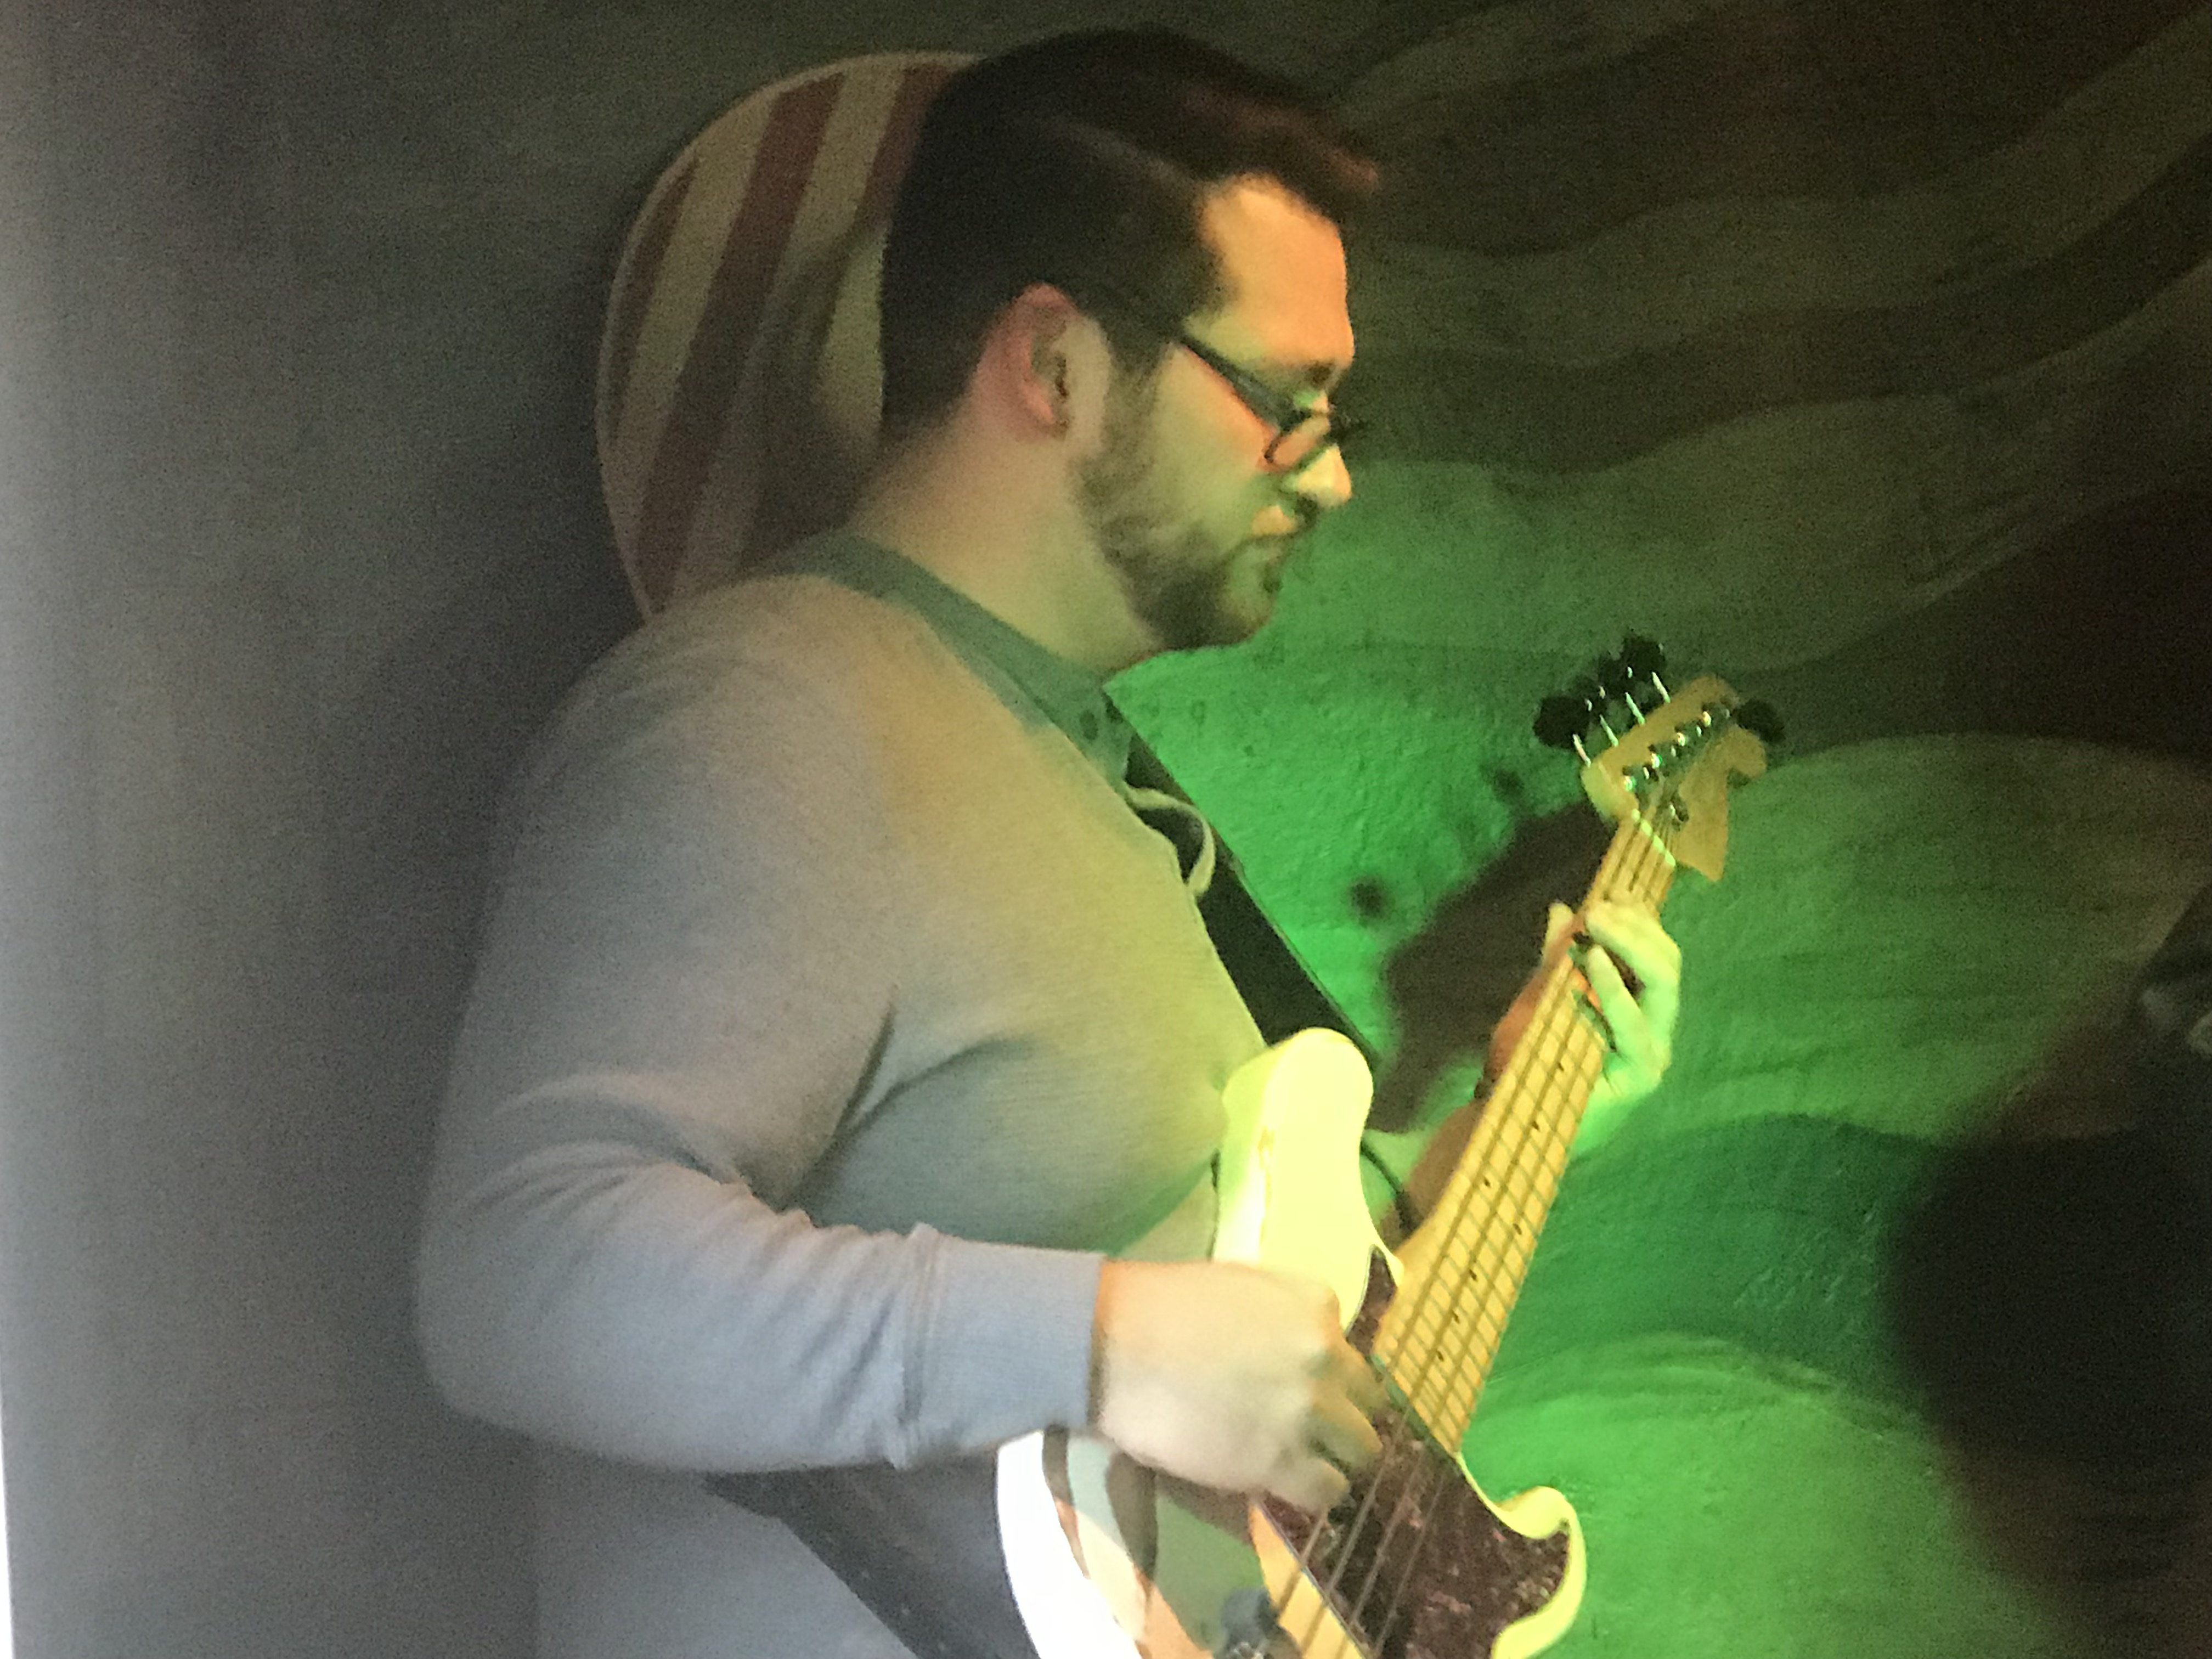 Derick playing electric bass